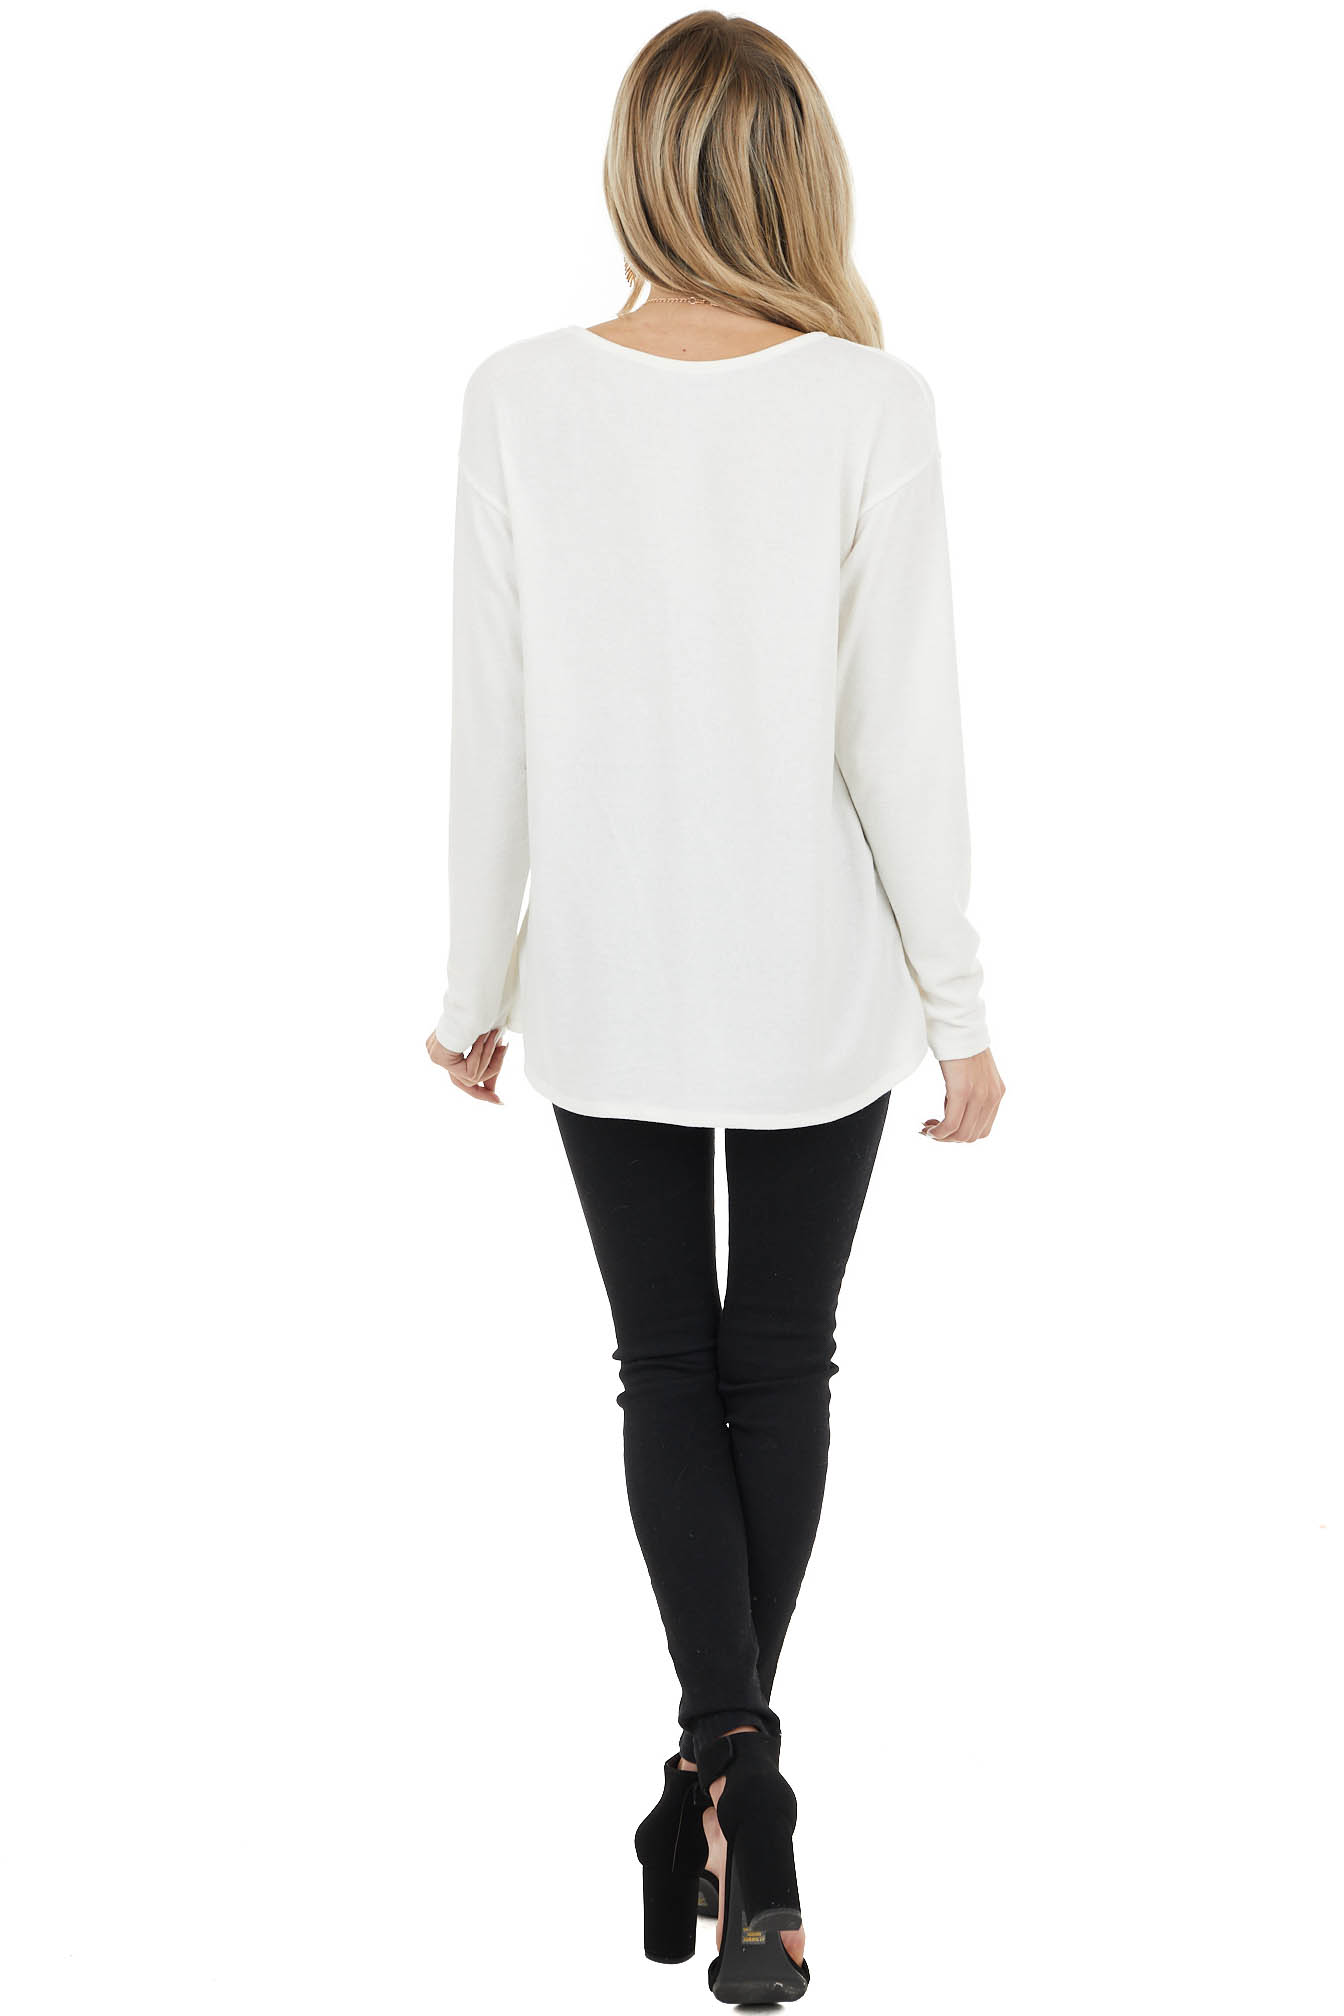 Ivory Long Sleeve Stretchy Knit Top with Rounded V Neckline